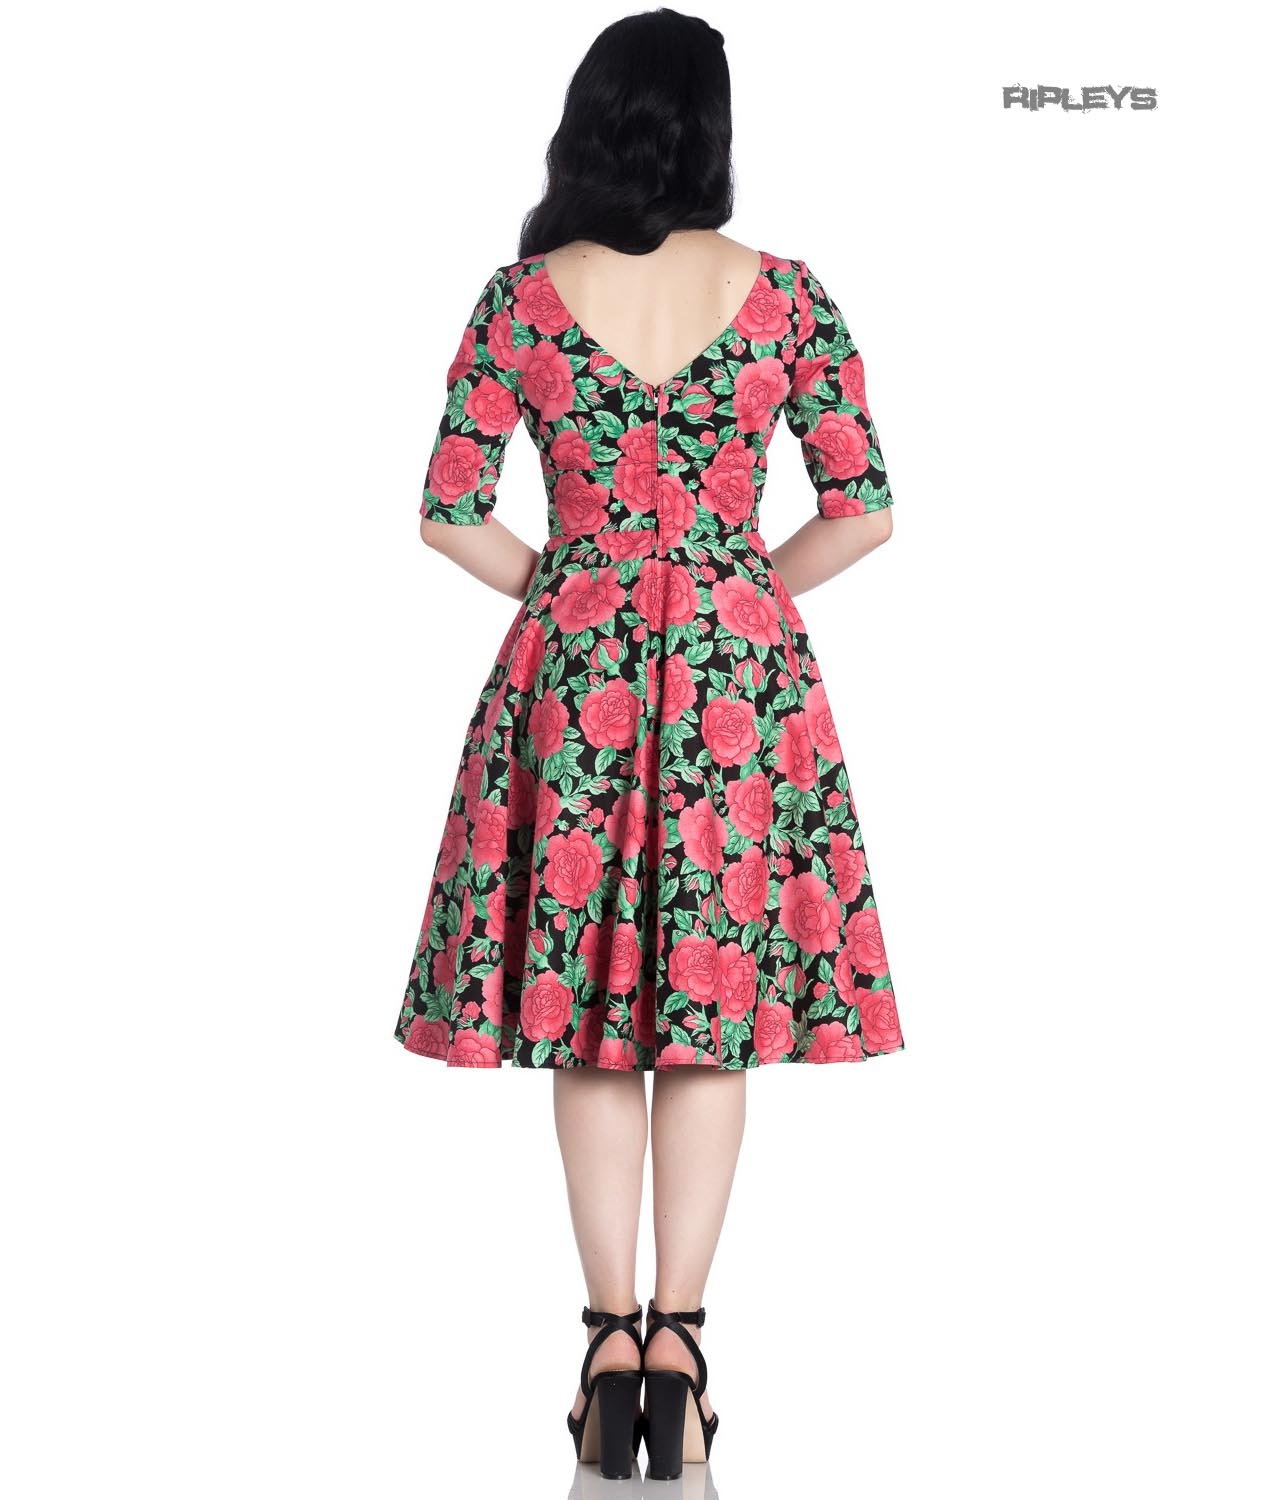 Hell-Bunny-40s-50s-Black-Pin-Up-Vintage-Dress-DARCY-Pink-Roses-All-Sizes thumbnail 4